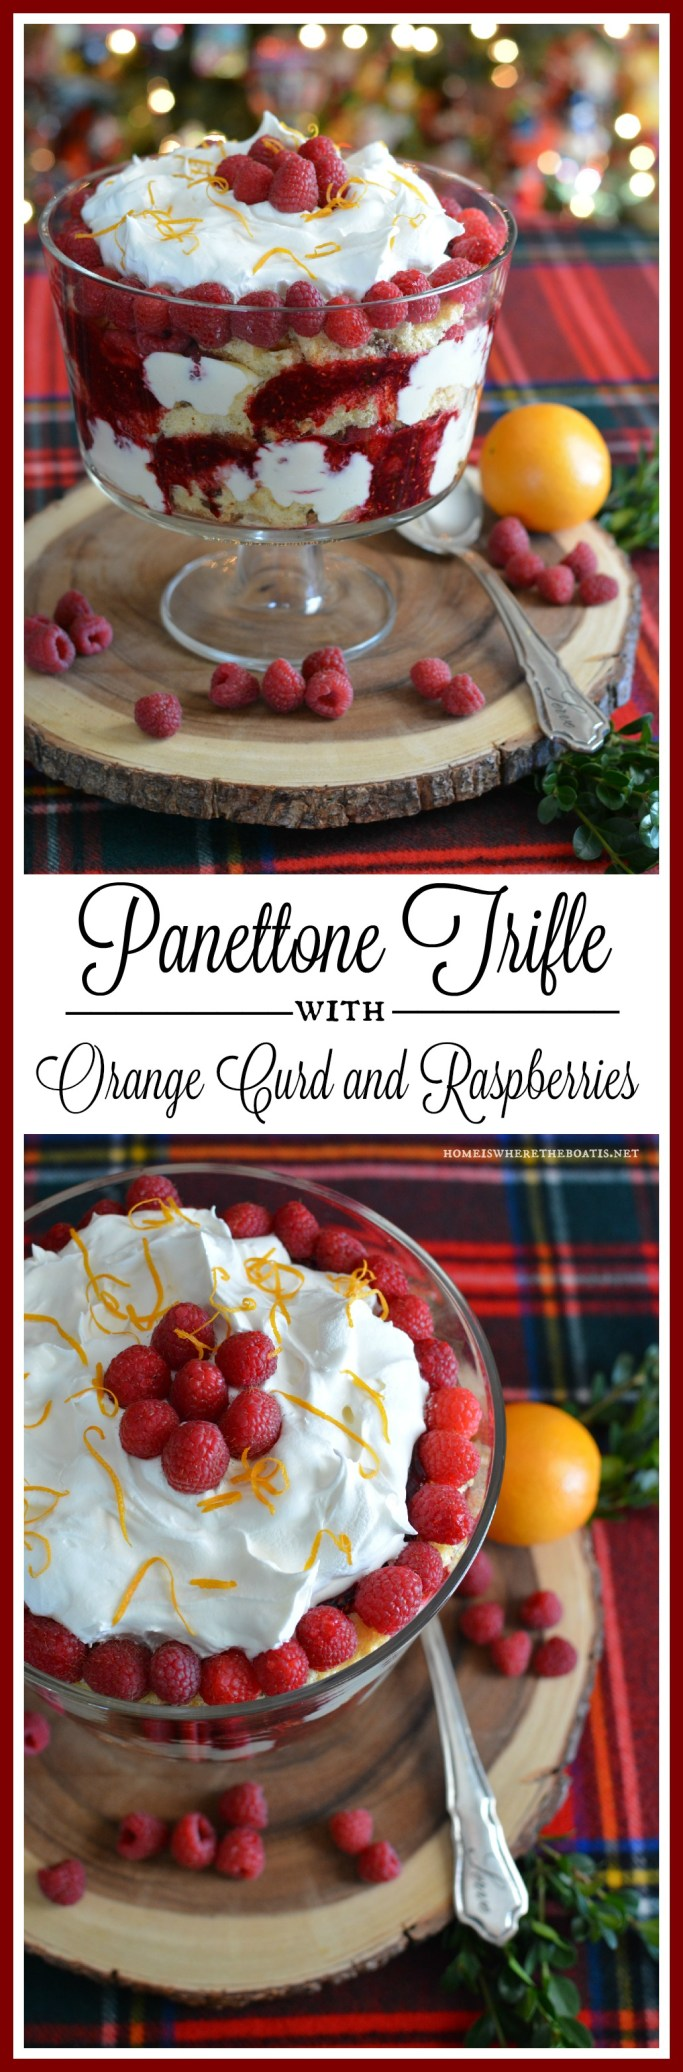 Panettone Trifle with Orange Curd and Raspberries